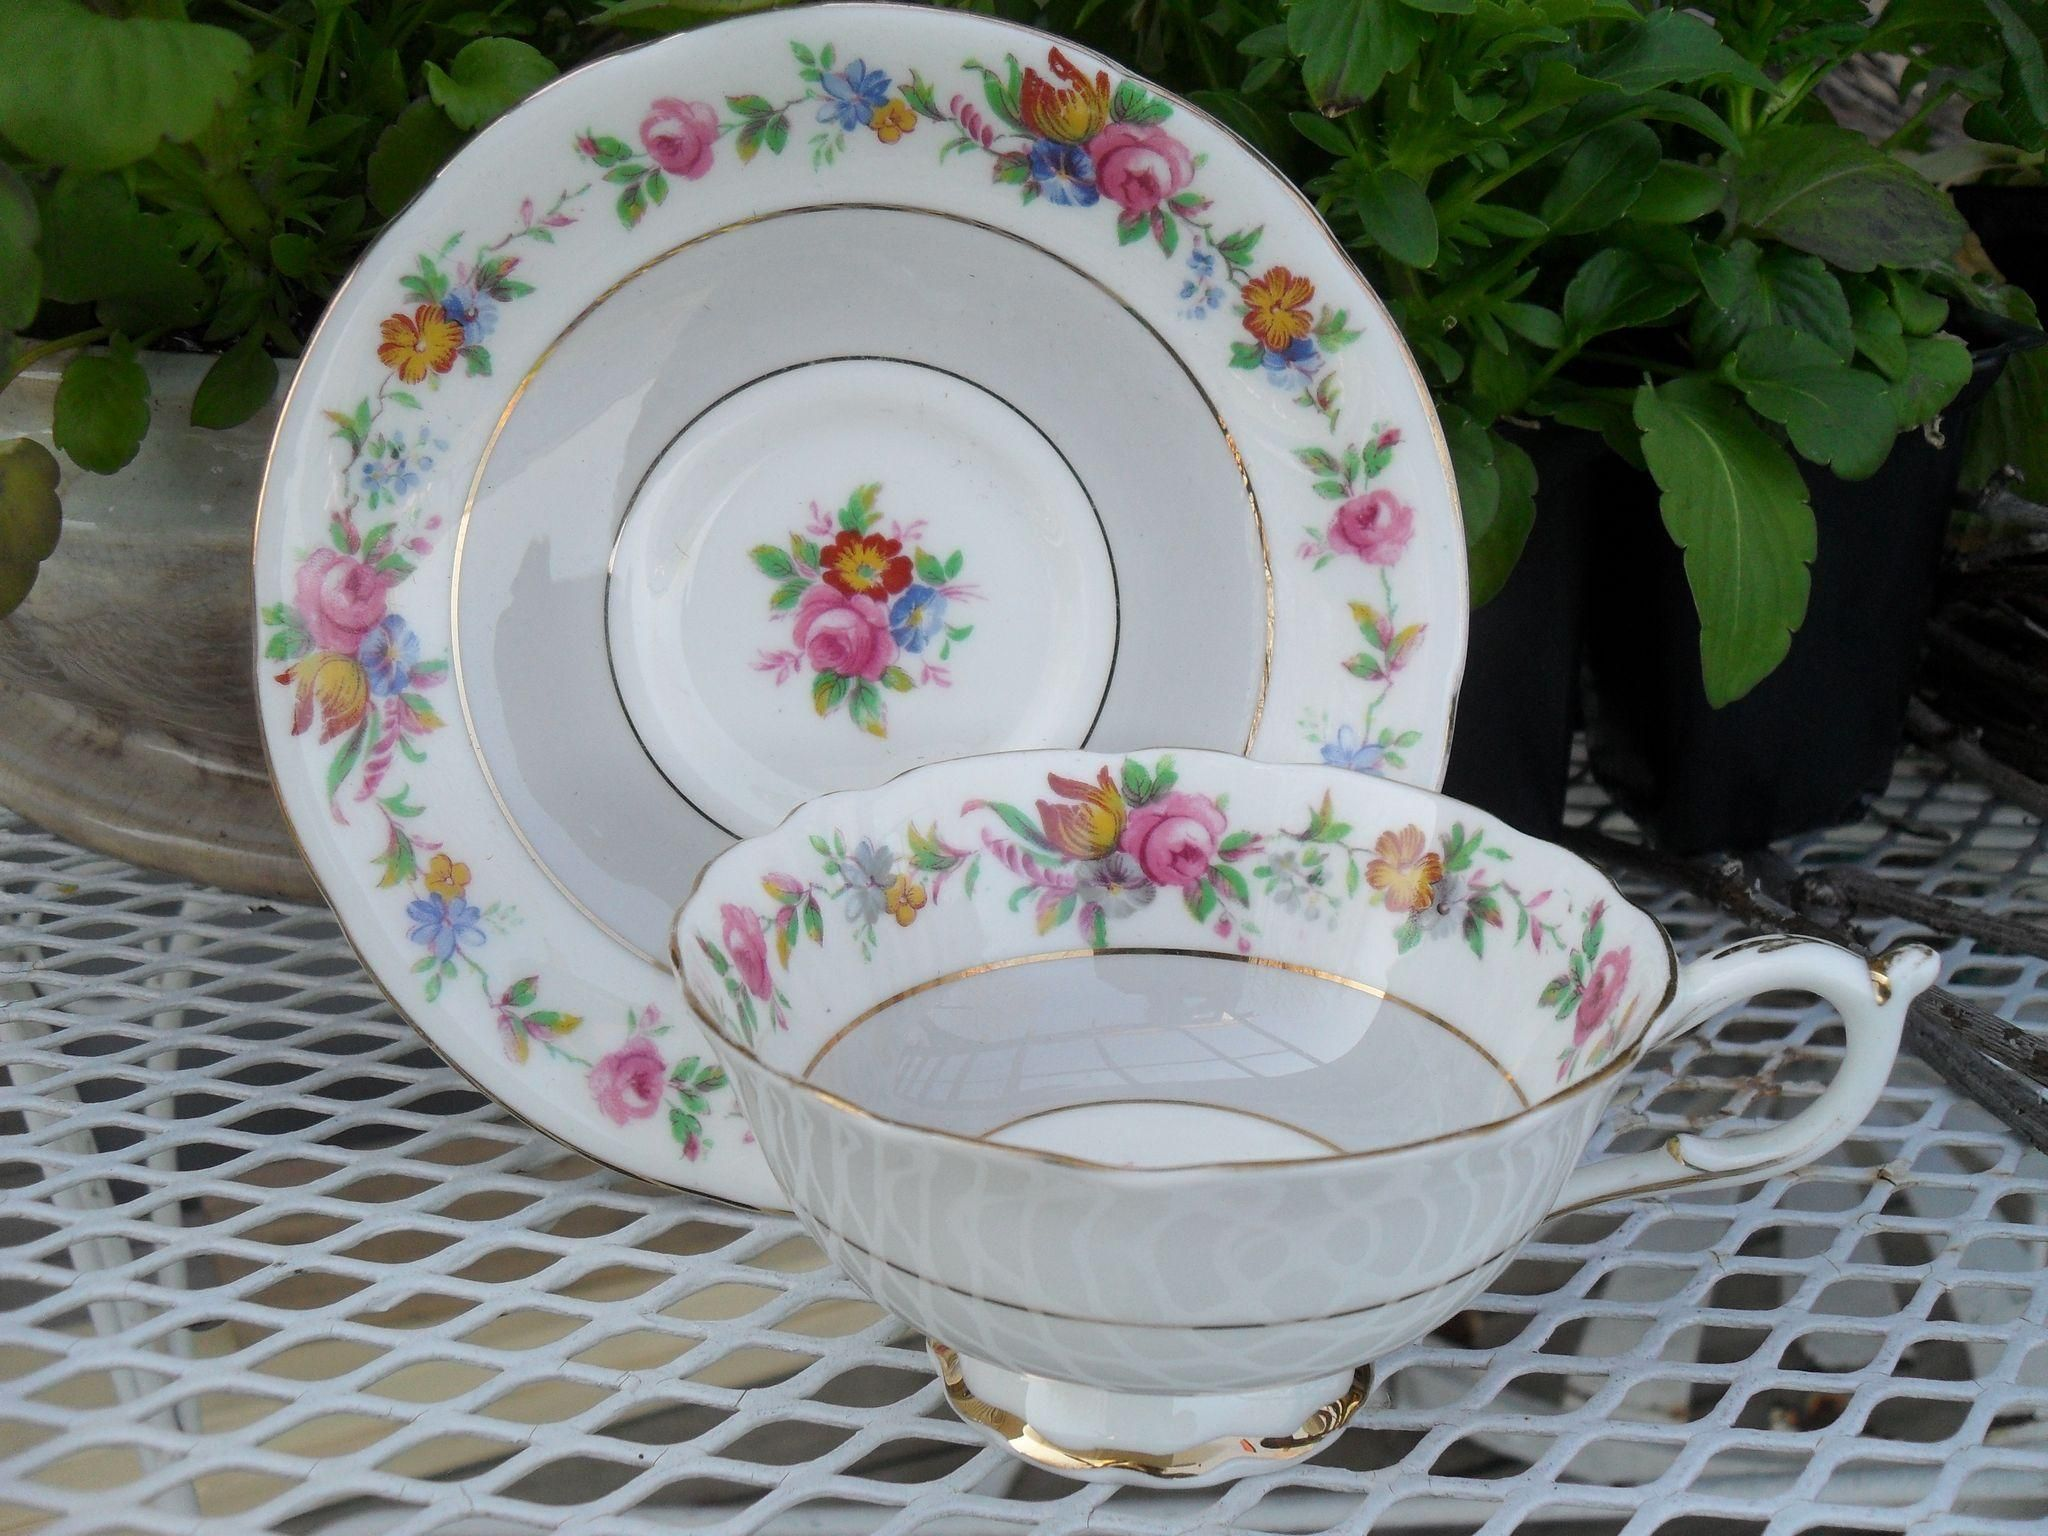 Early Paragon DW Queen Mary Pink Floral Rose Teacup and Saucer 66465 from misssmithvt on Ruby Lane